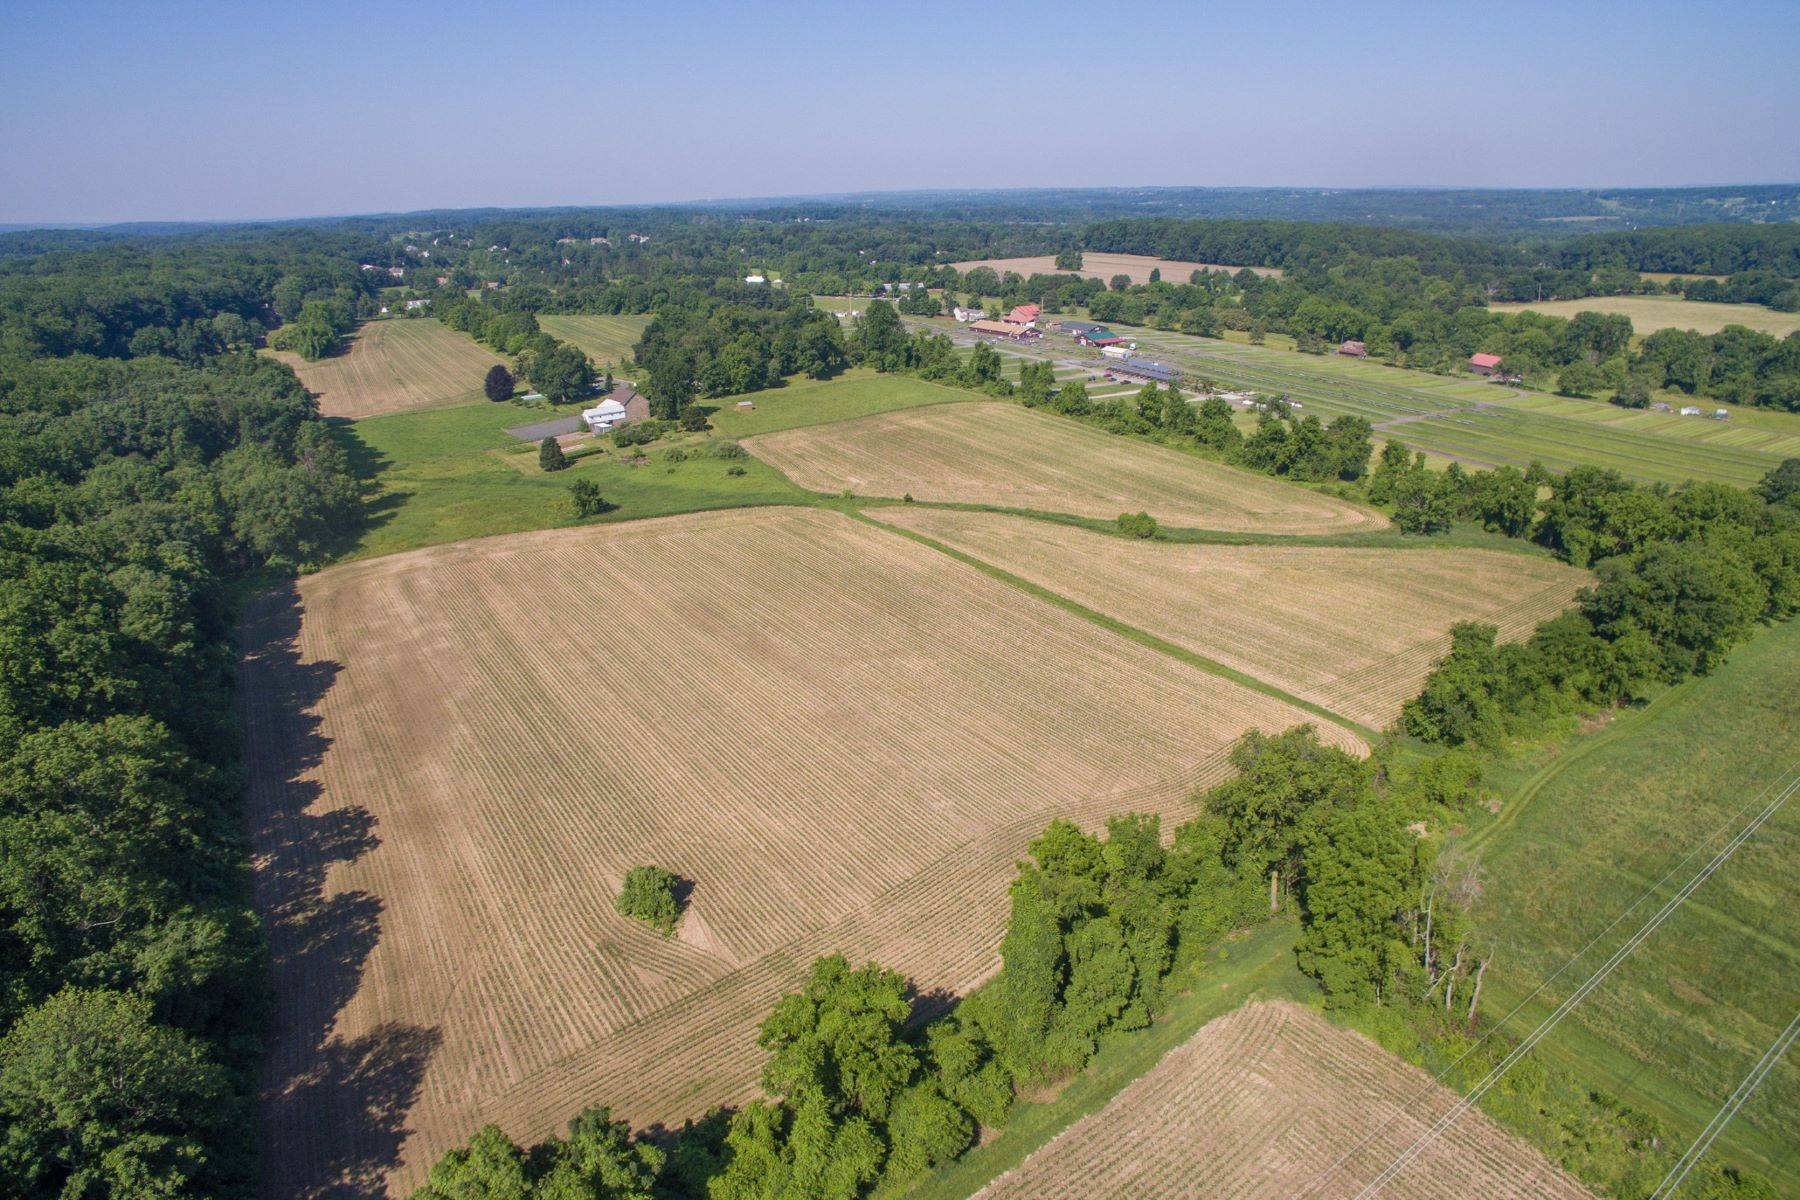 Land for Sale at 36 Gorgeous Acres 3161 CREAMERY RD New Hope, Pennsylvania, 18938 United States